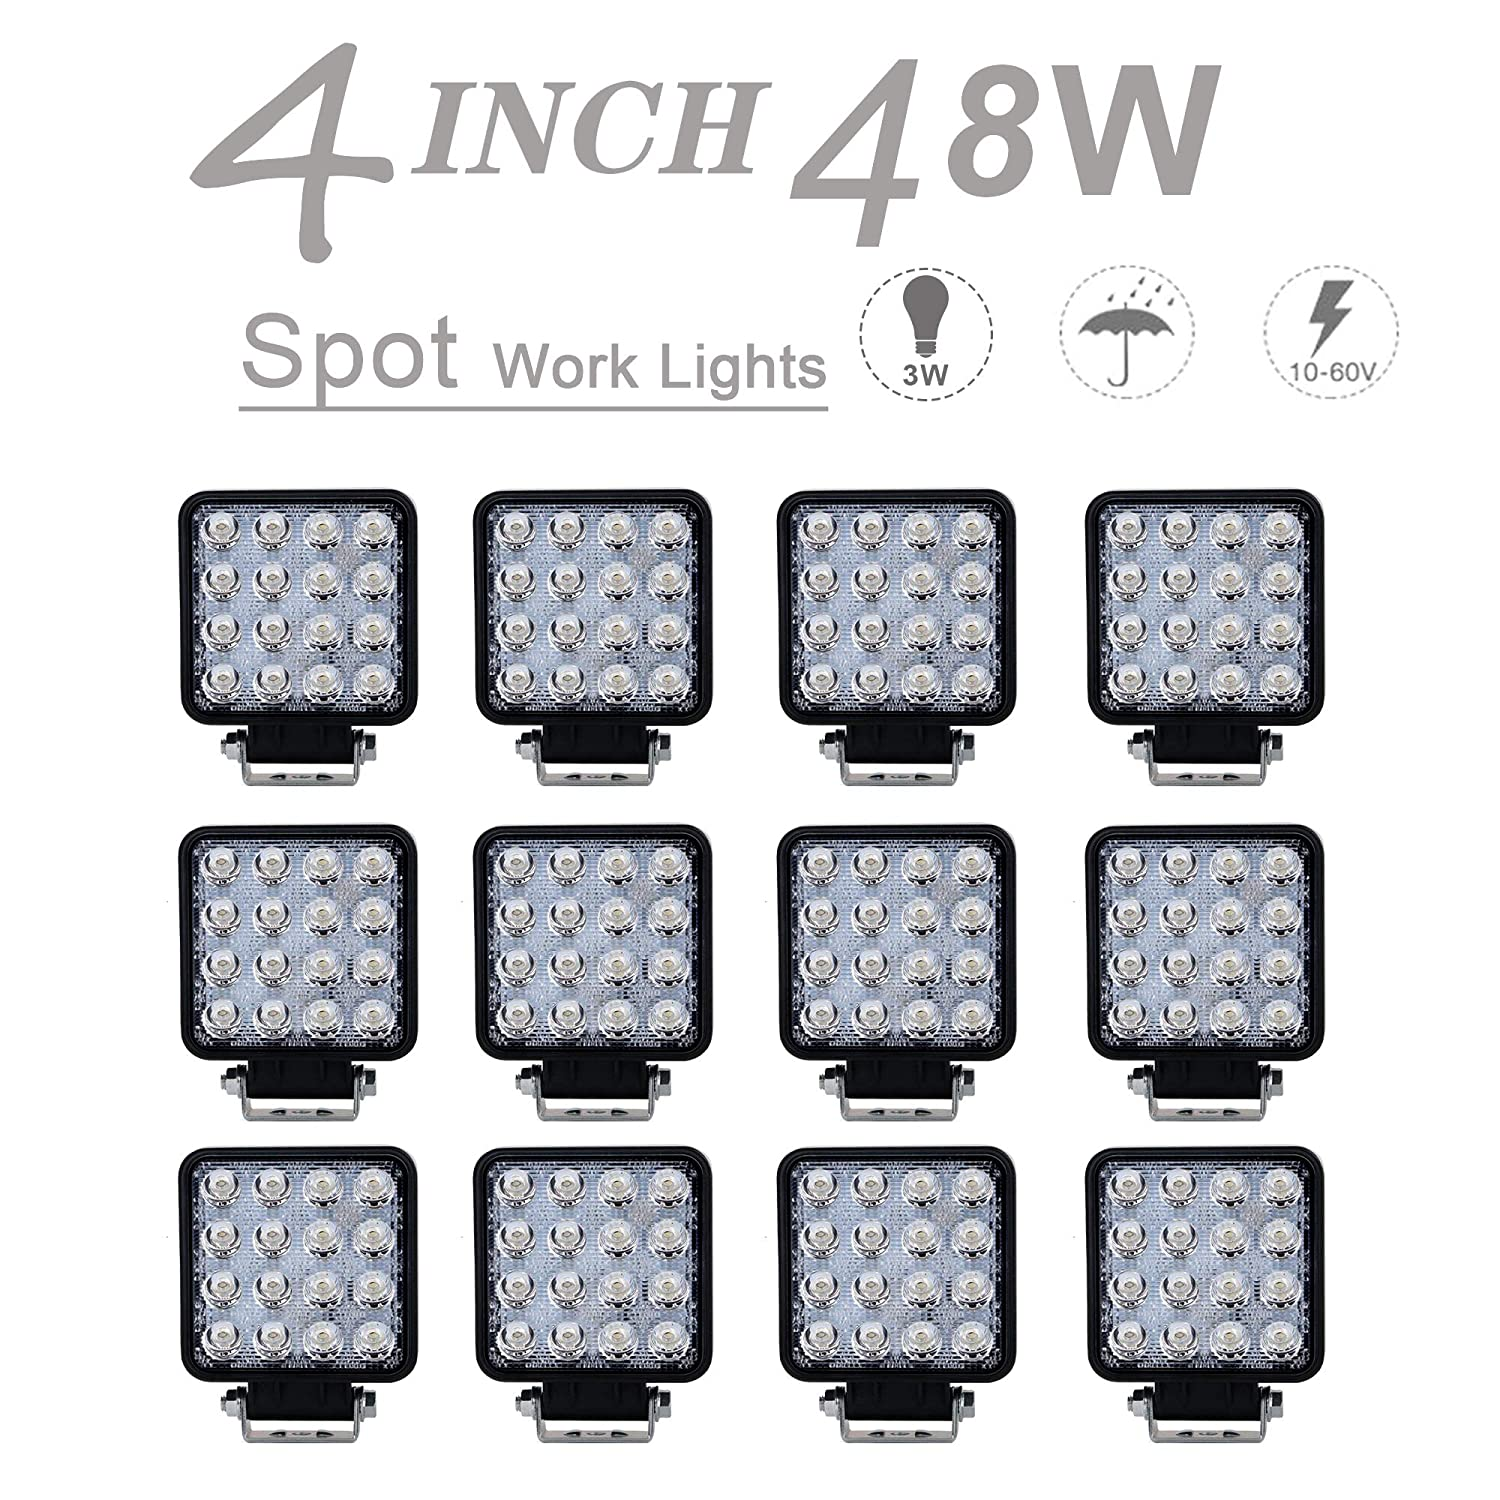 12V-24V 12pcs Square 4' 48W Spot LED Fog Lights DRL Driving Back Up Work Lamps Grill Front Rear Bumper Cube Pods Light for ATV 4X4 Tractor Boat Side By Side Dodge John Deere Off Road Pickup F150 Jeep UNI FILTER